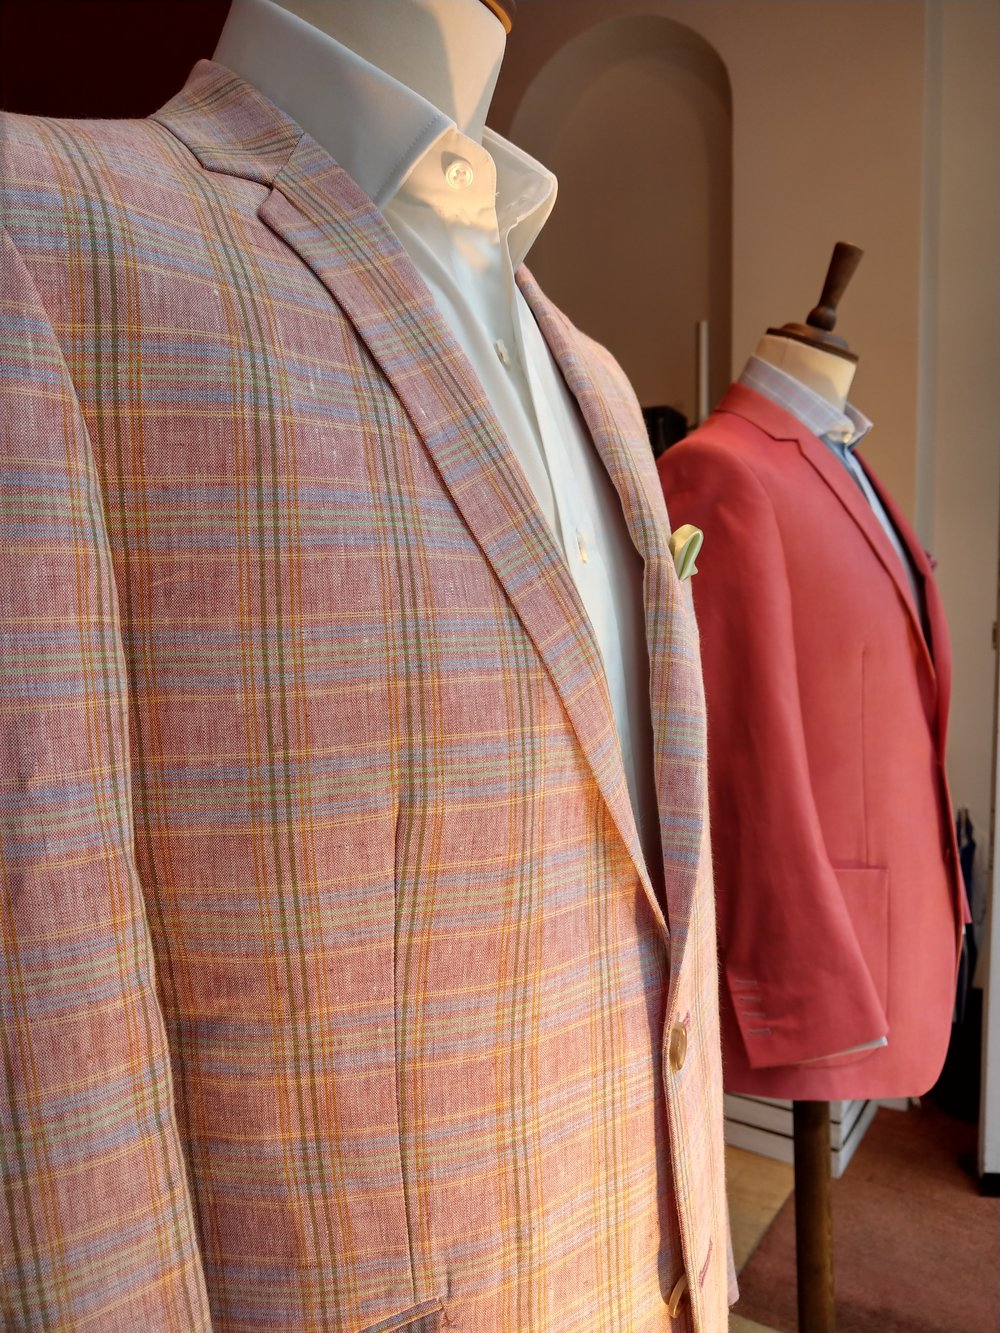 bespoke-linen-cotton-jacket-bateman-ogden-dormeuil-susannah-hall-tailor-made-uk-britain.jpg